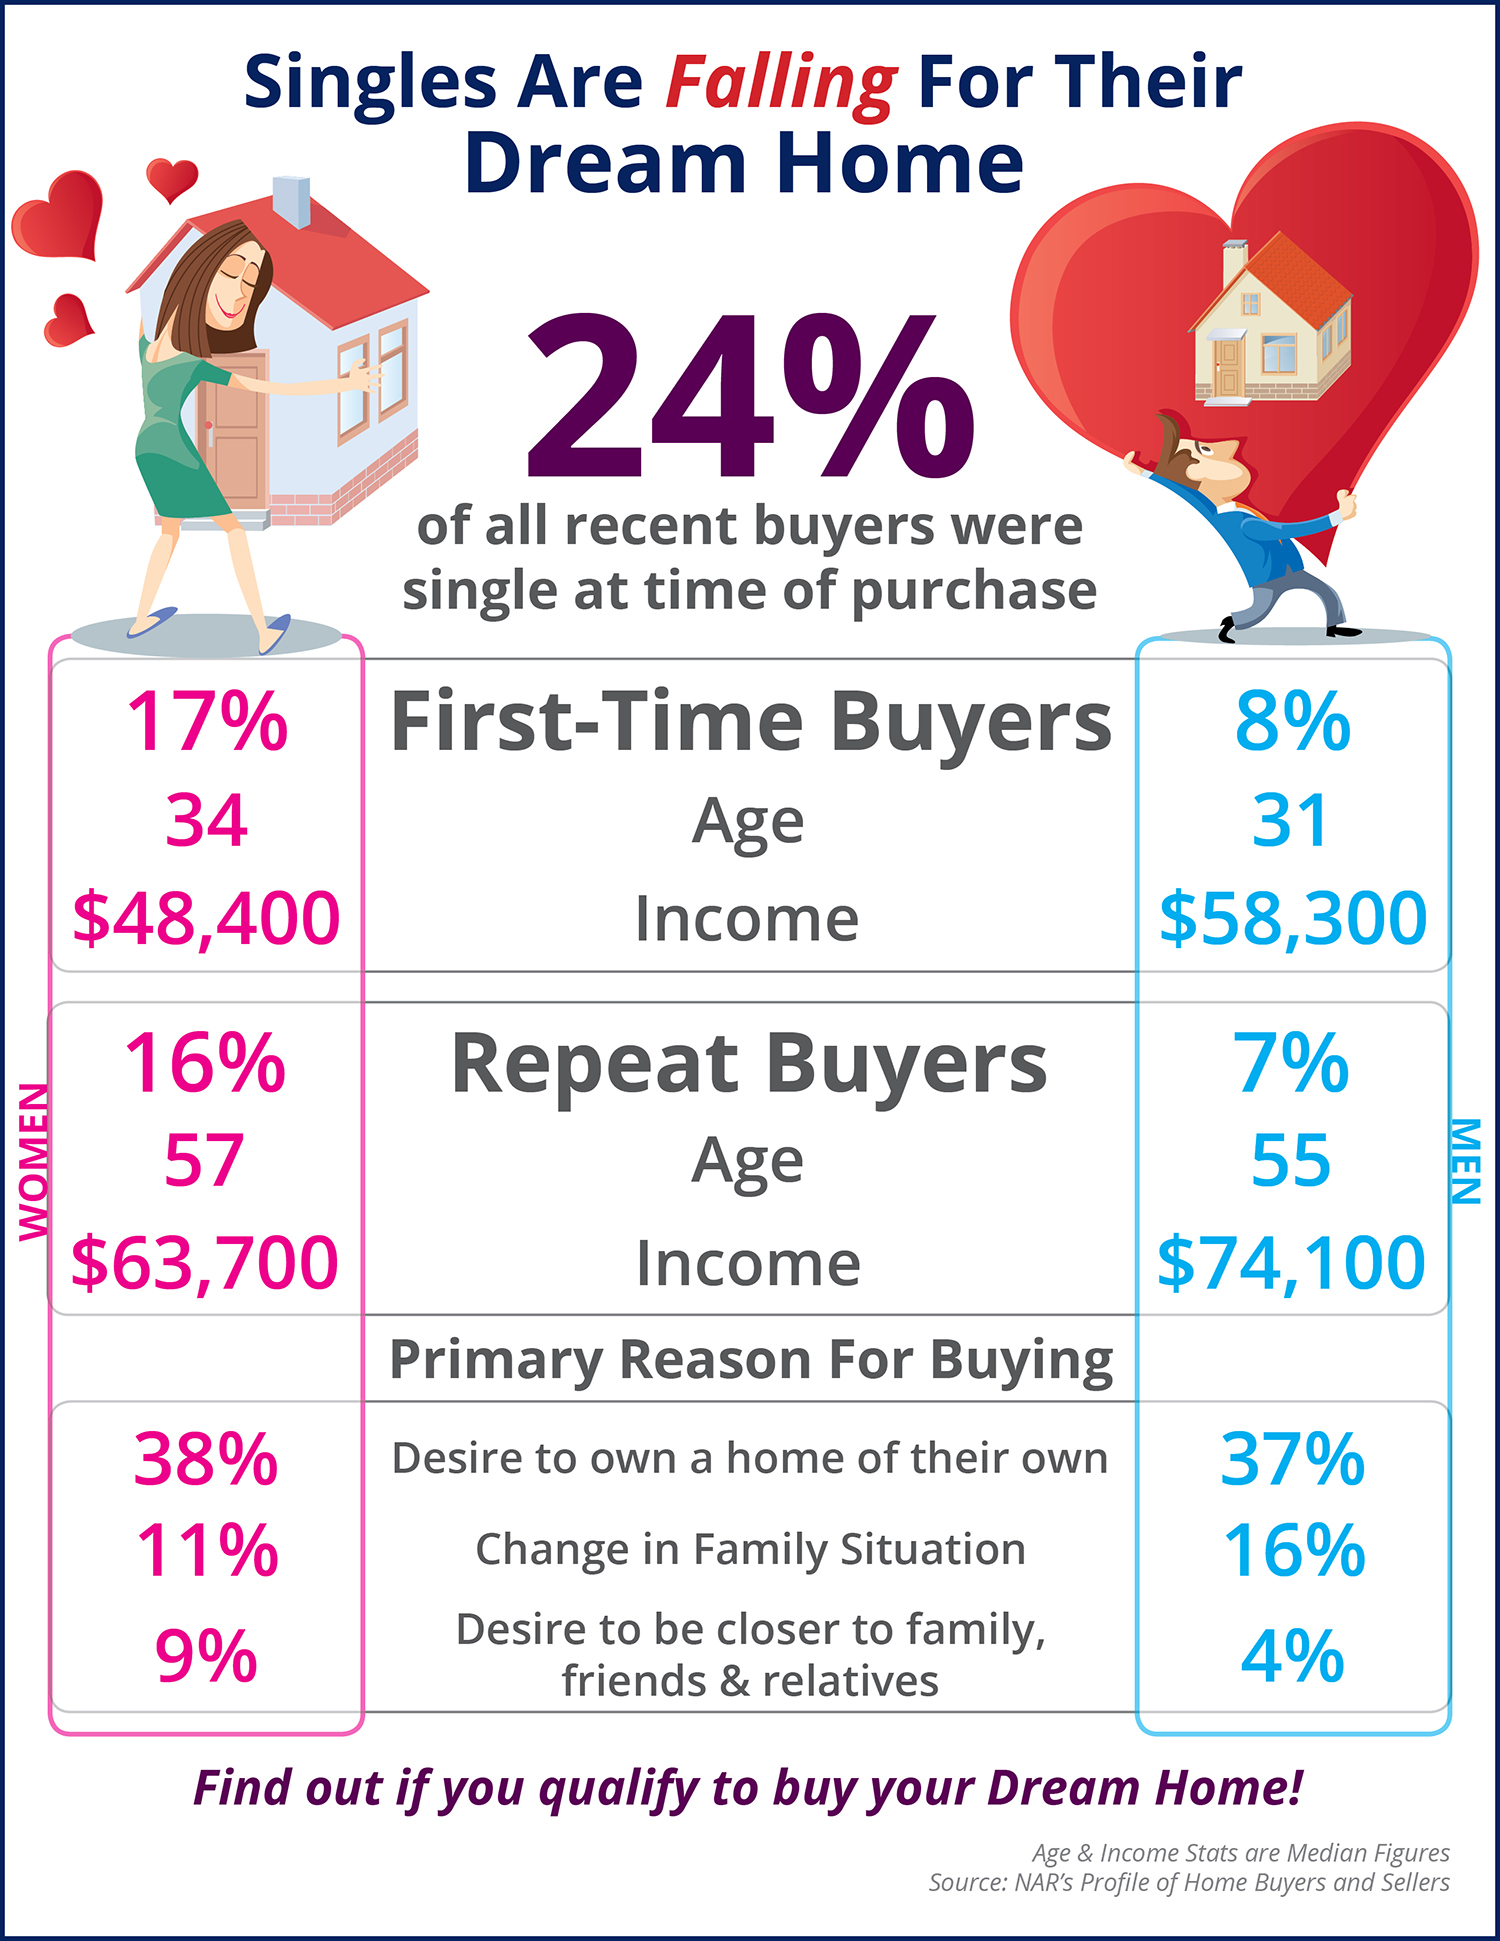 Singles Are Falling for Their Dream Home First [INFOGRAPHIC]